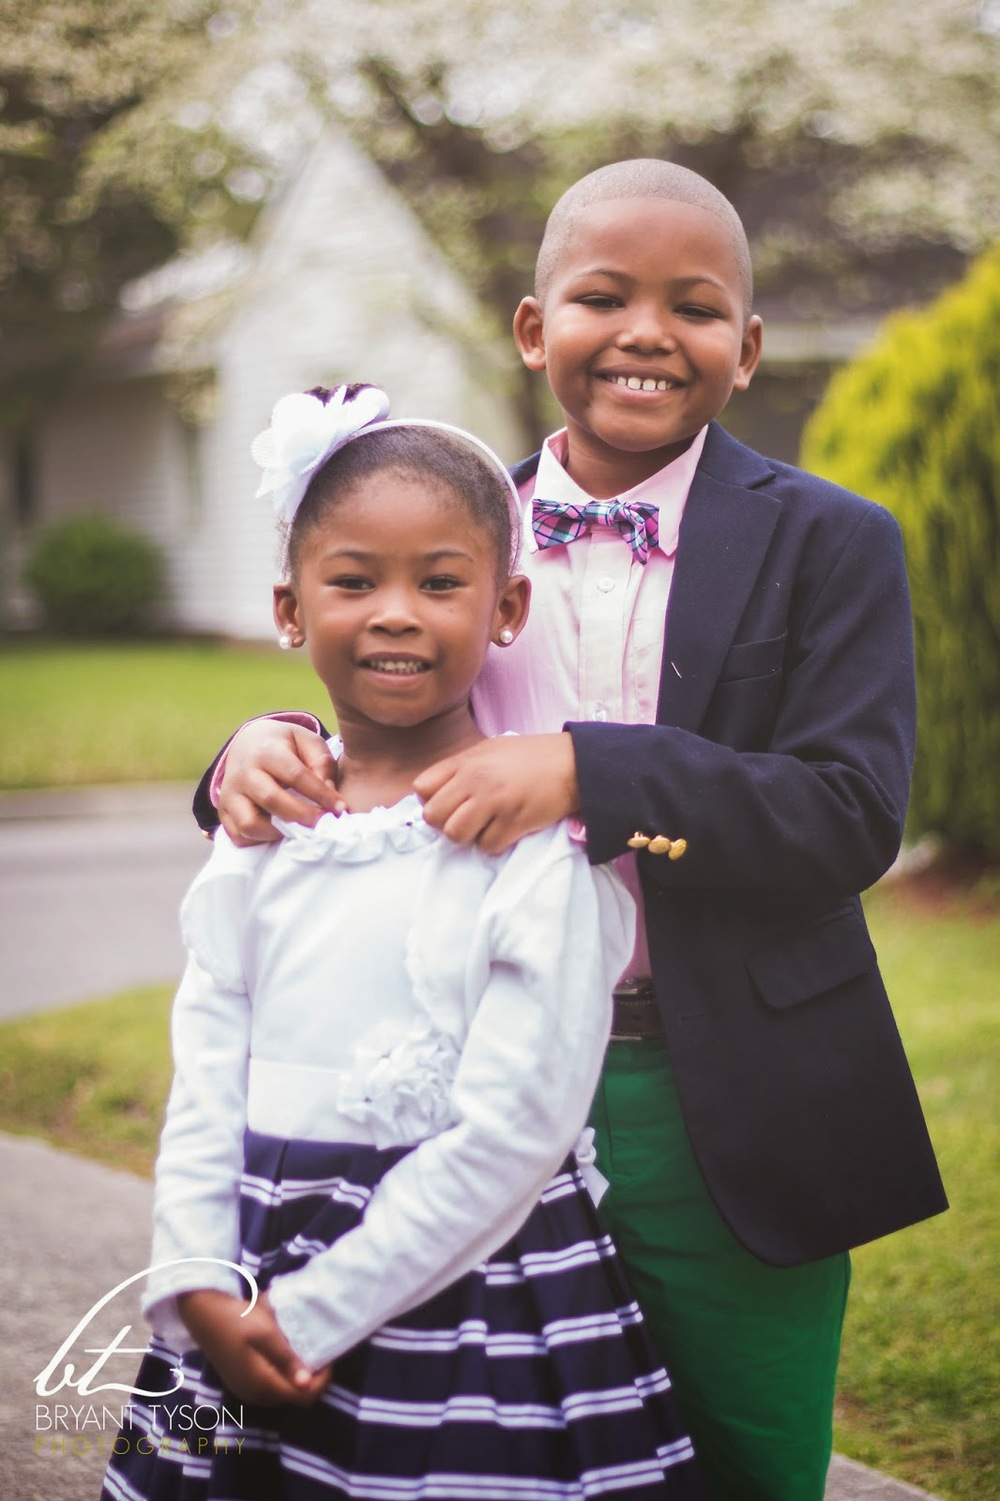 bryant tyson photography greenville nc photographer family portraits easter 2014 5